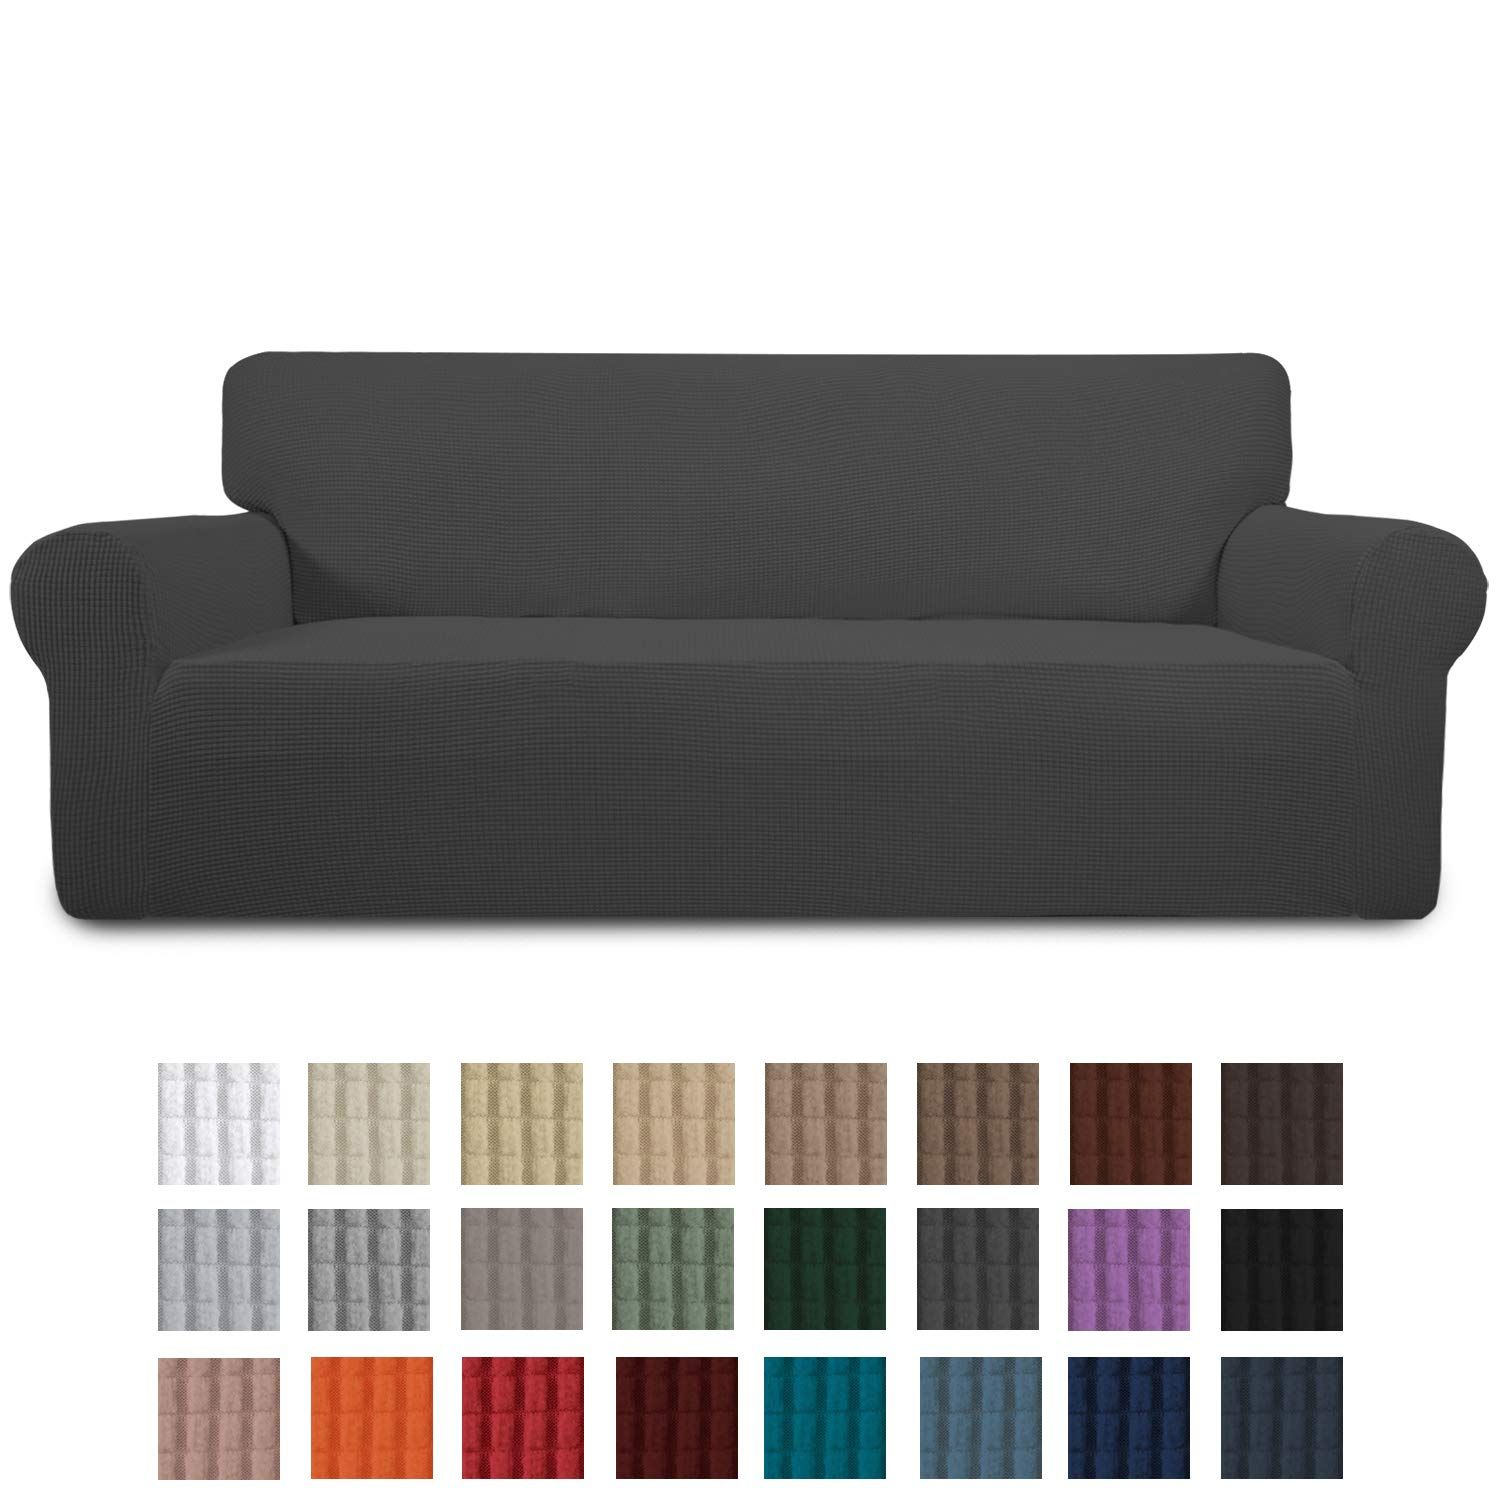 Easy Going Stretch Sofa Slipcover 1 Piece Couch Sofa Cover Furniture Protector Soft With Elastic Bottom For Kids In 2020 Slipcovered Sofa Slipcovers Slip Covers Couch